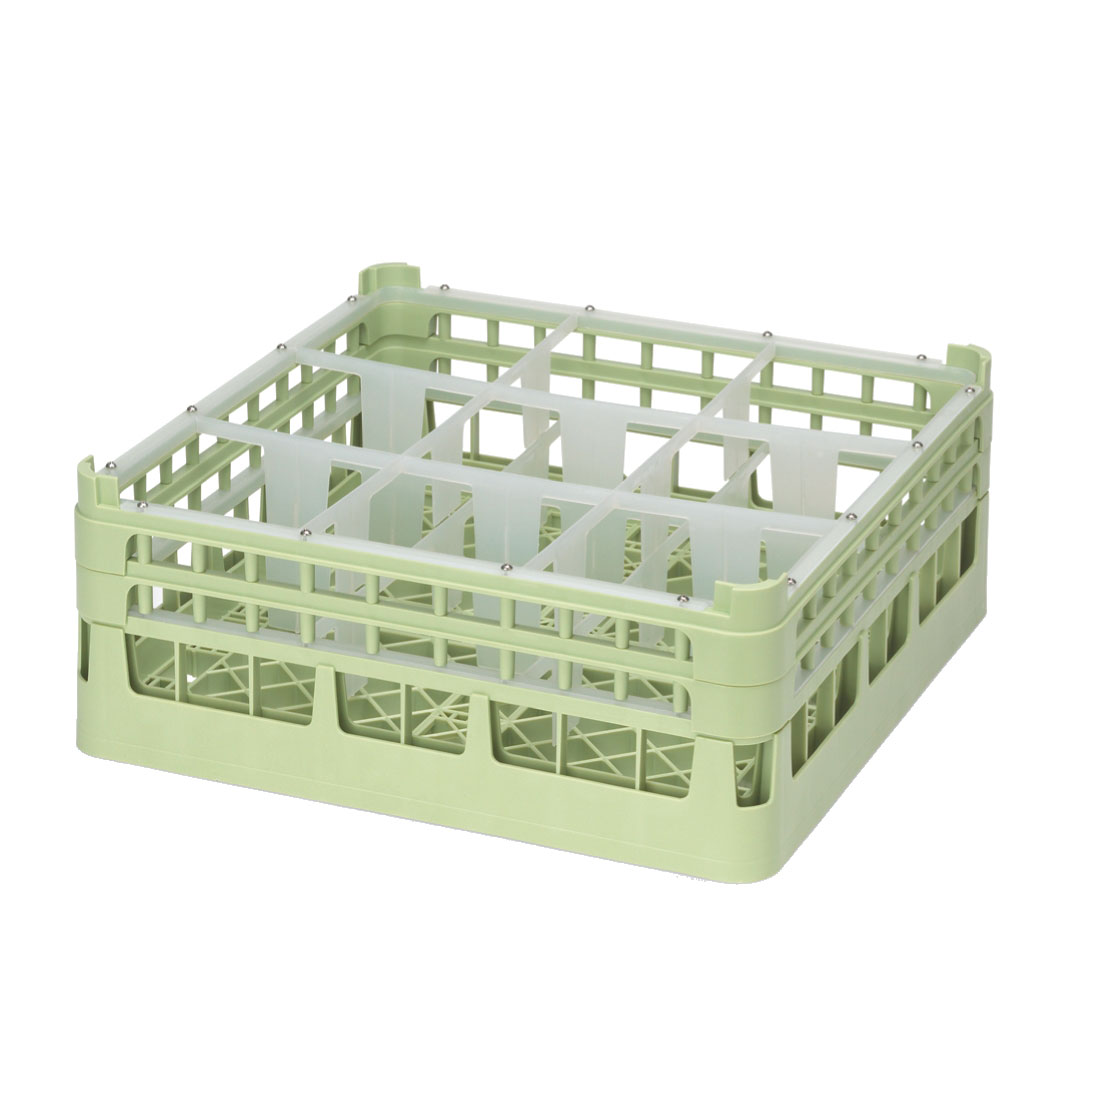 Vollrath 52760 dishwasher rack, glass compartment